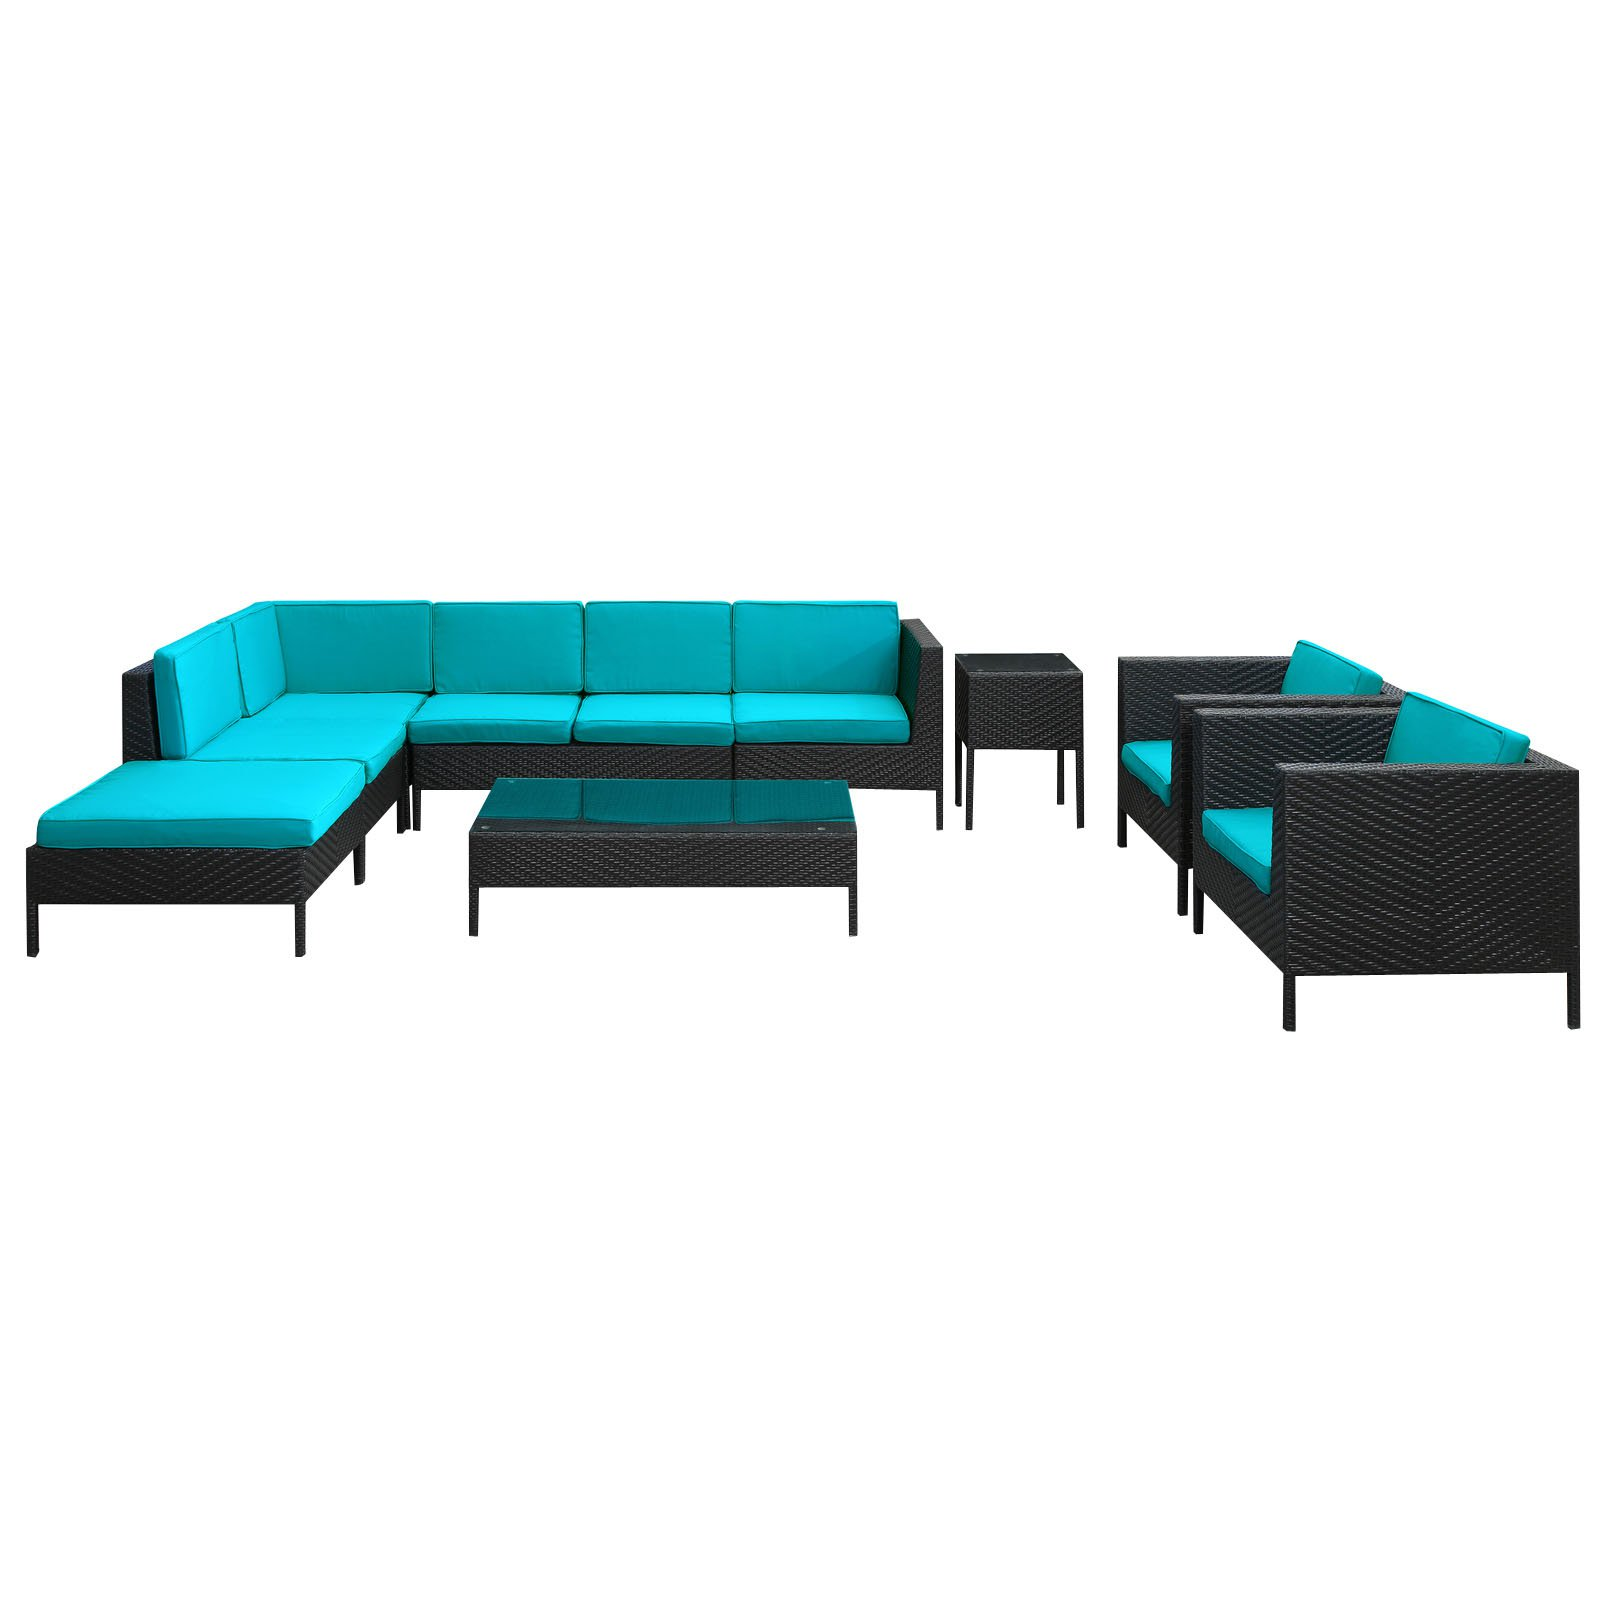 La Jolla All-Weather Wicker Sectional Conversation Set Seats 8 by R & M Industries Inc